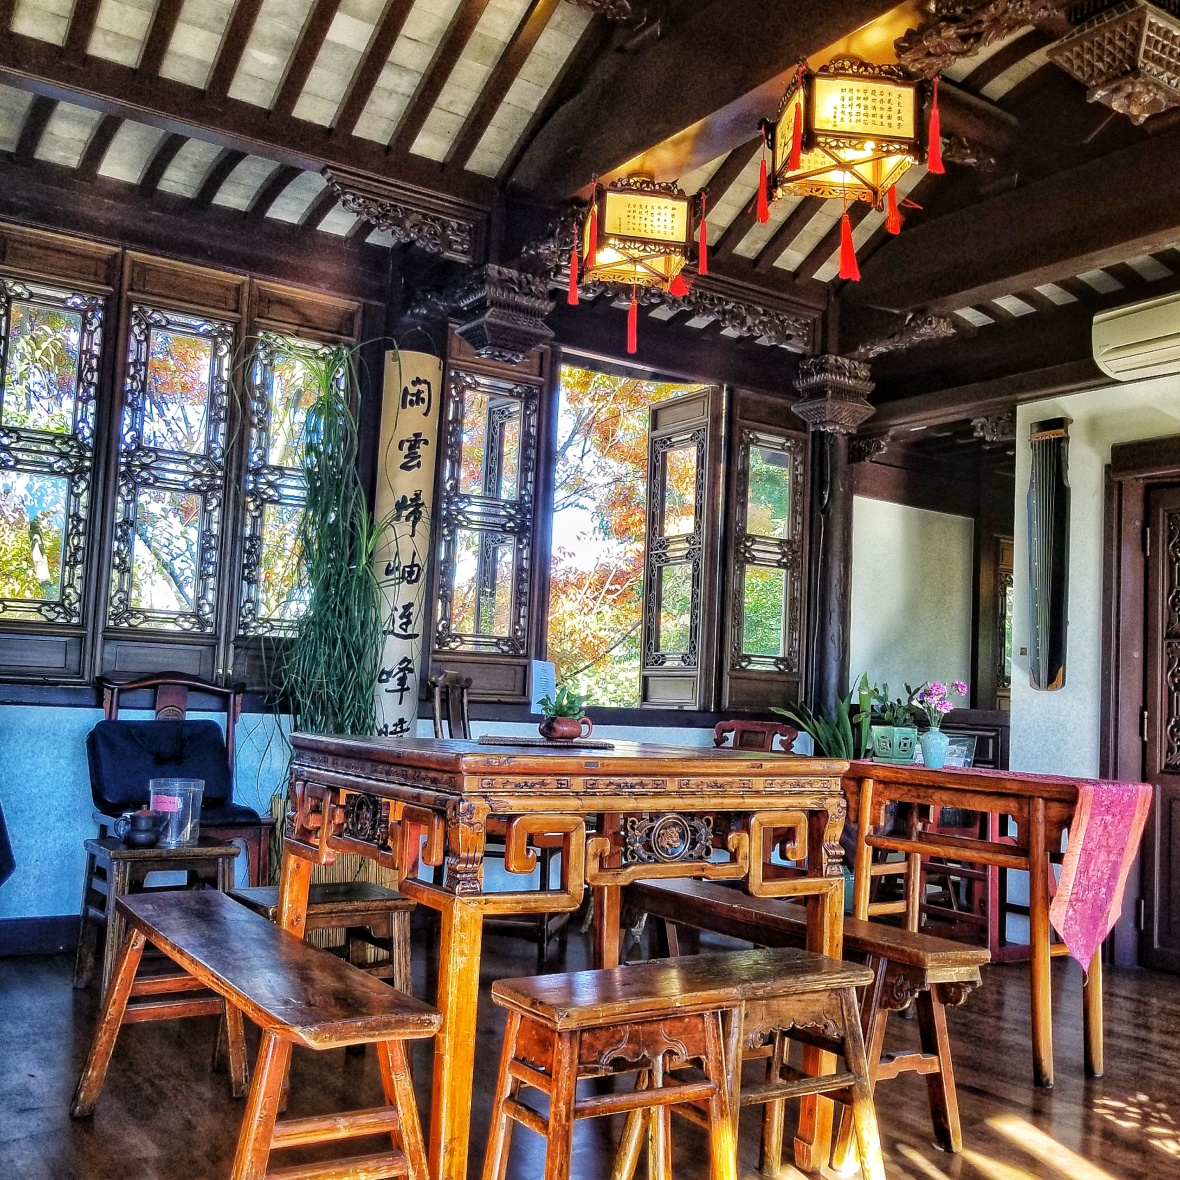 LAn Su - Inside Tea Room